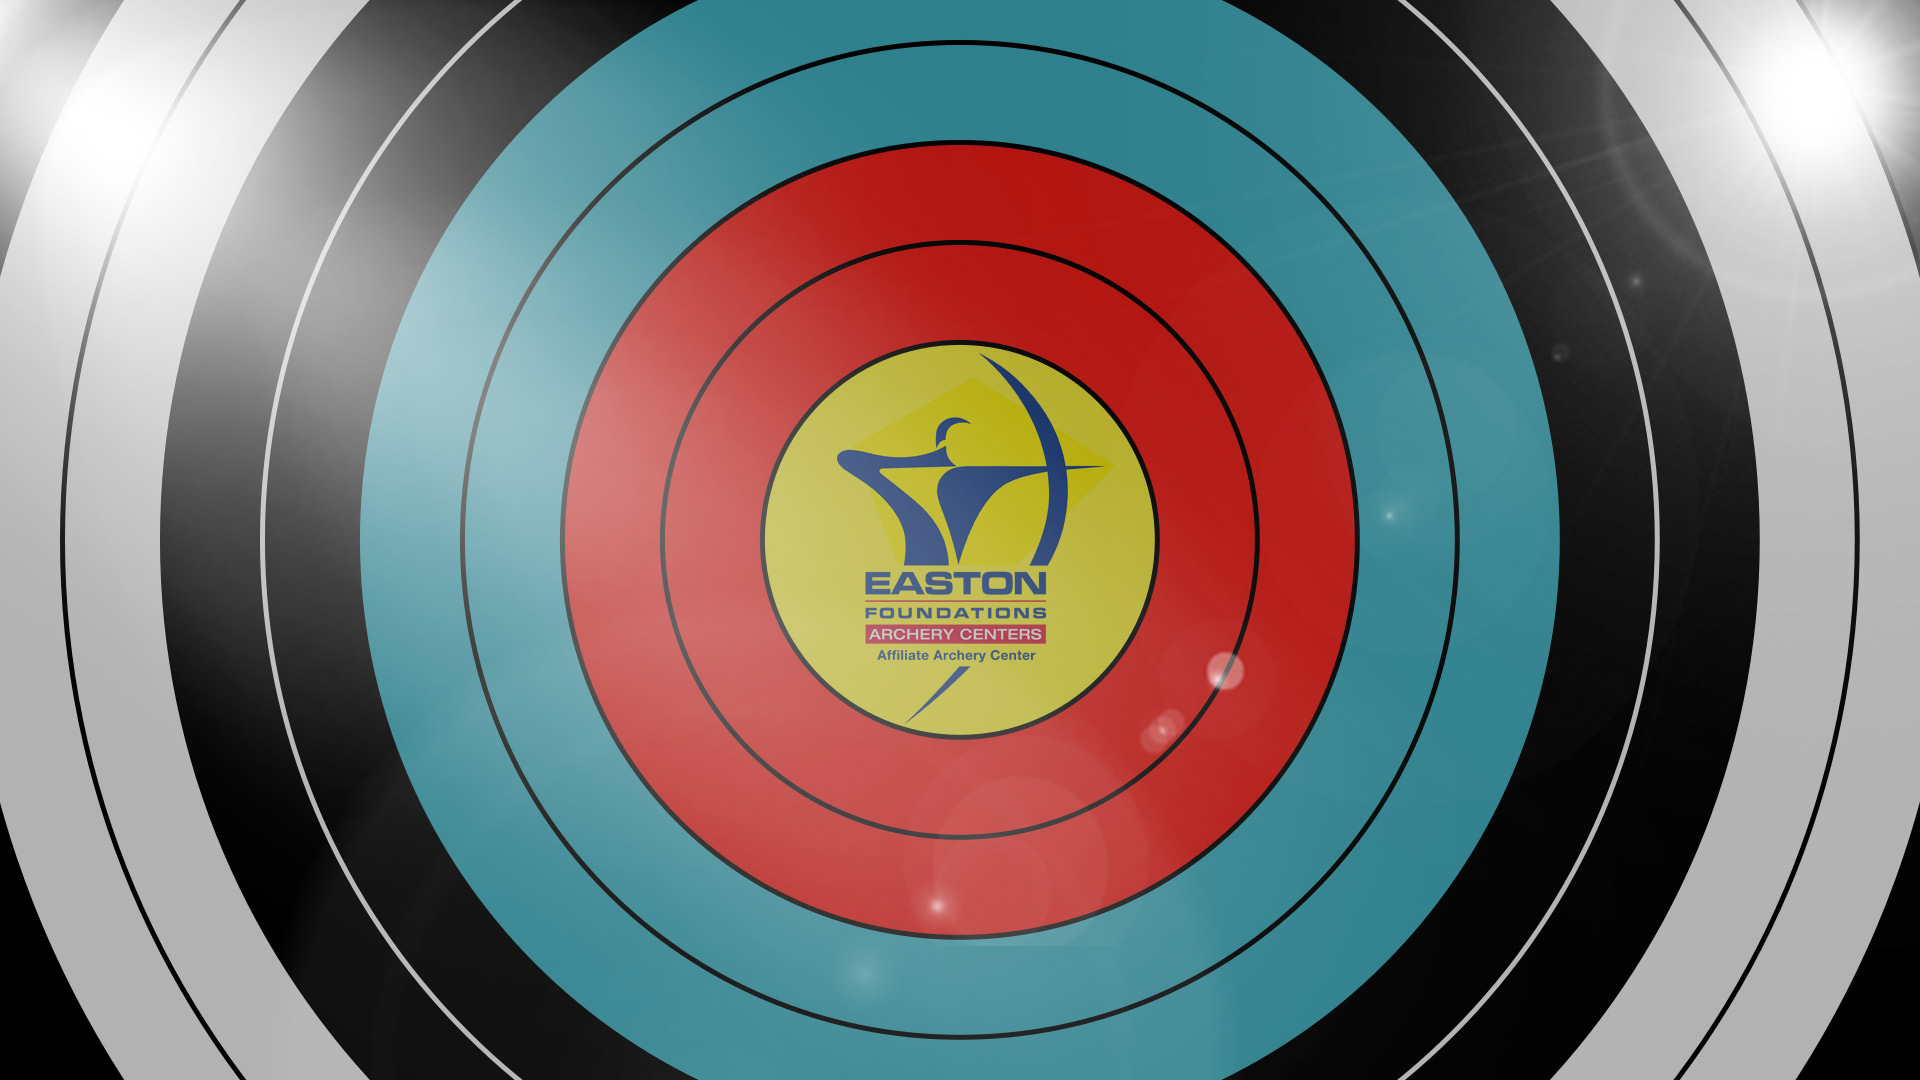 Affiliate Centers - Great Archery Facilities Across The Country